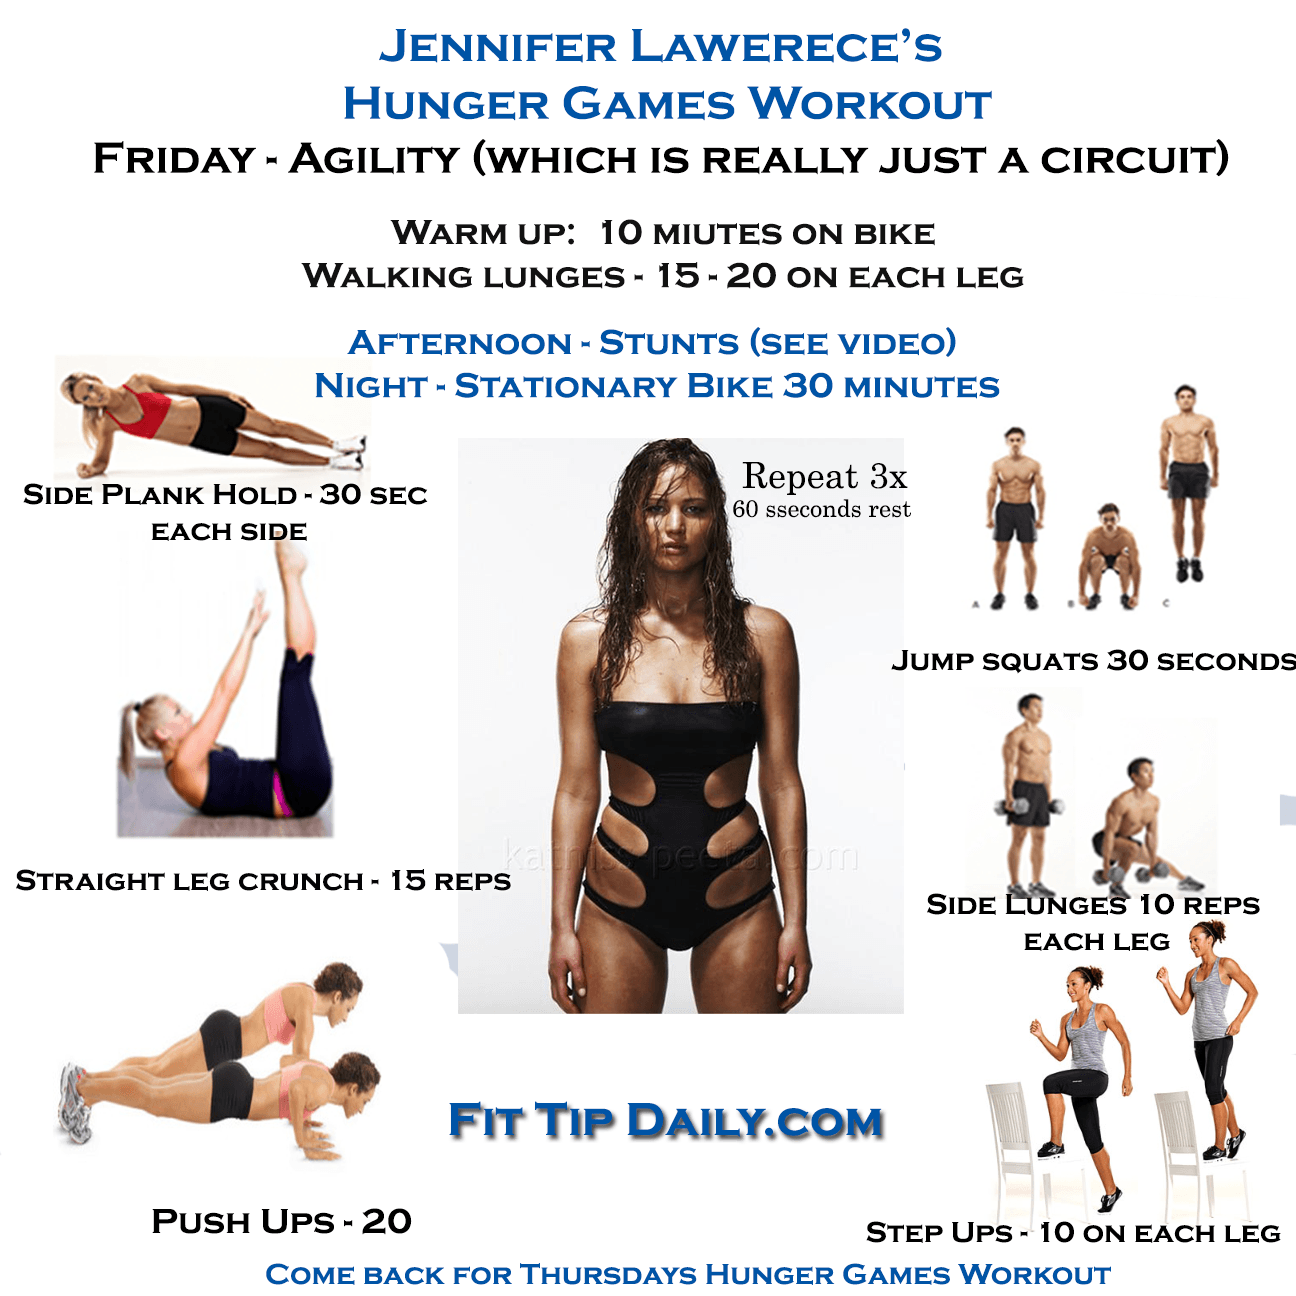 jennifer-lawrence-workout-friday.png